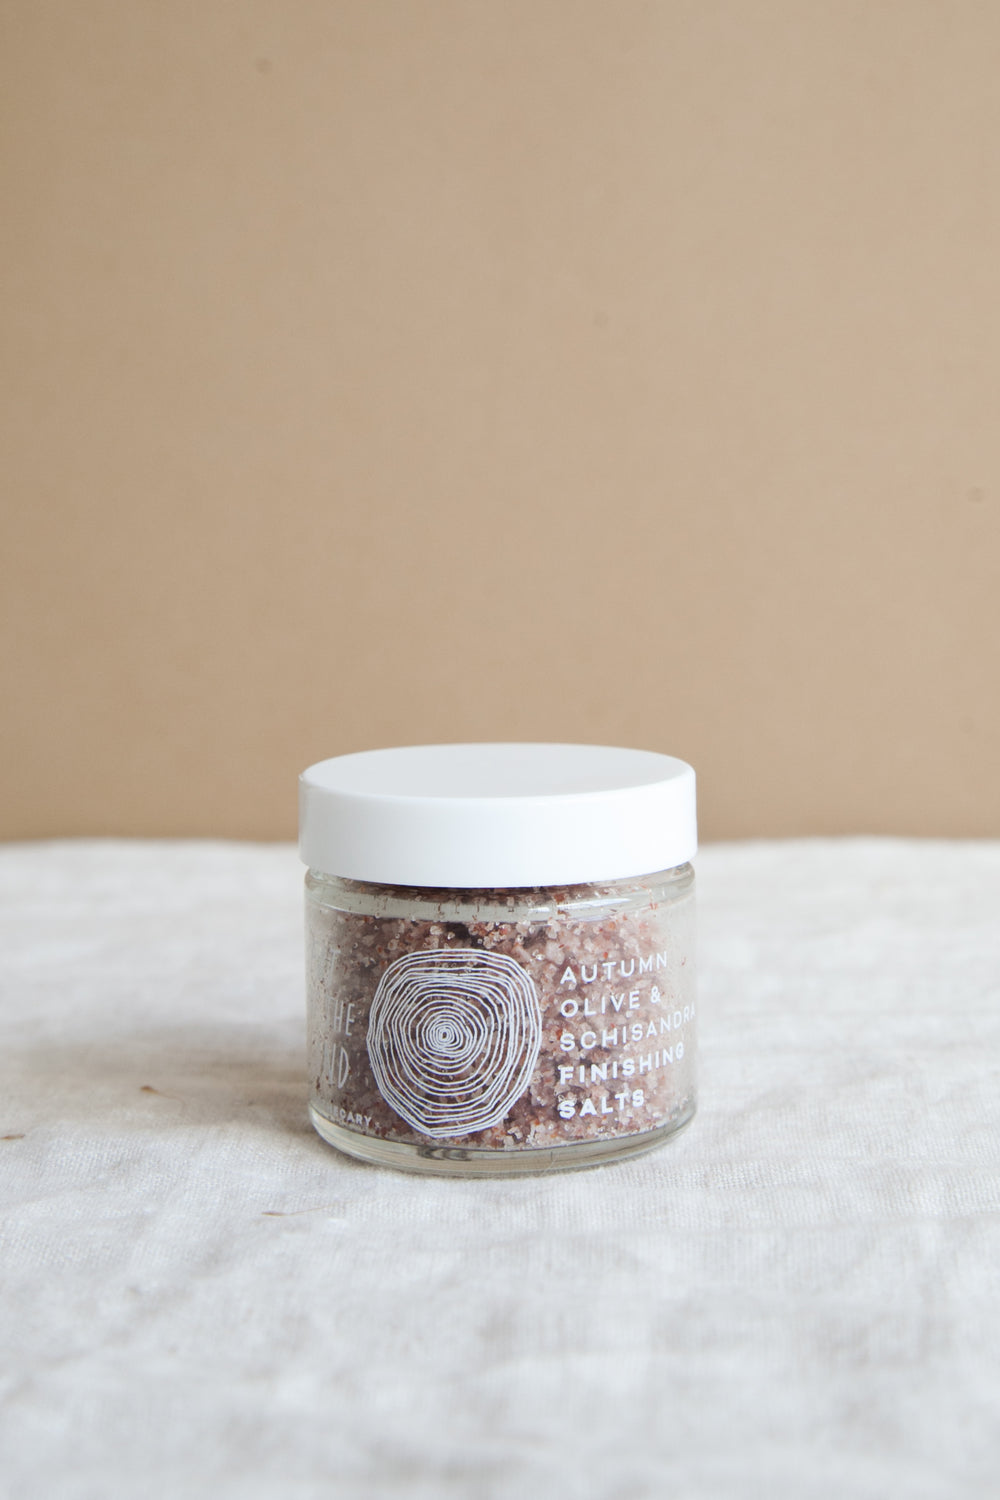 Autum Olive & Schisandra Finishing Salts